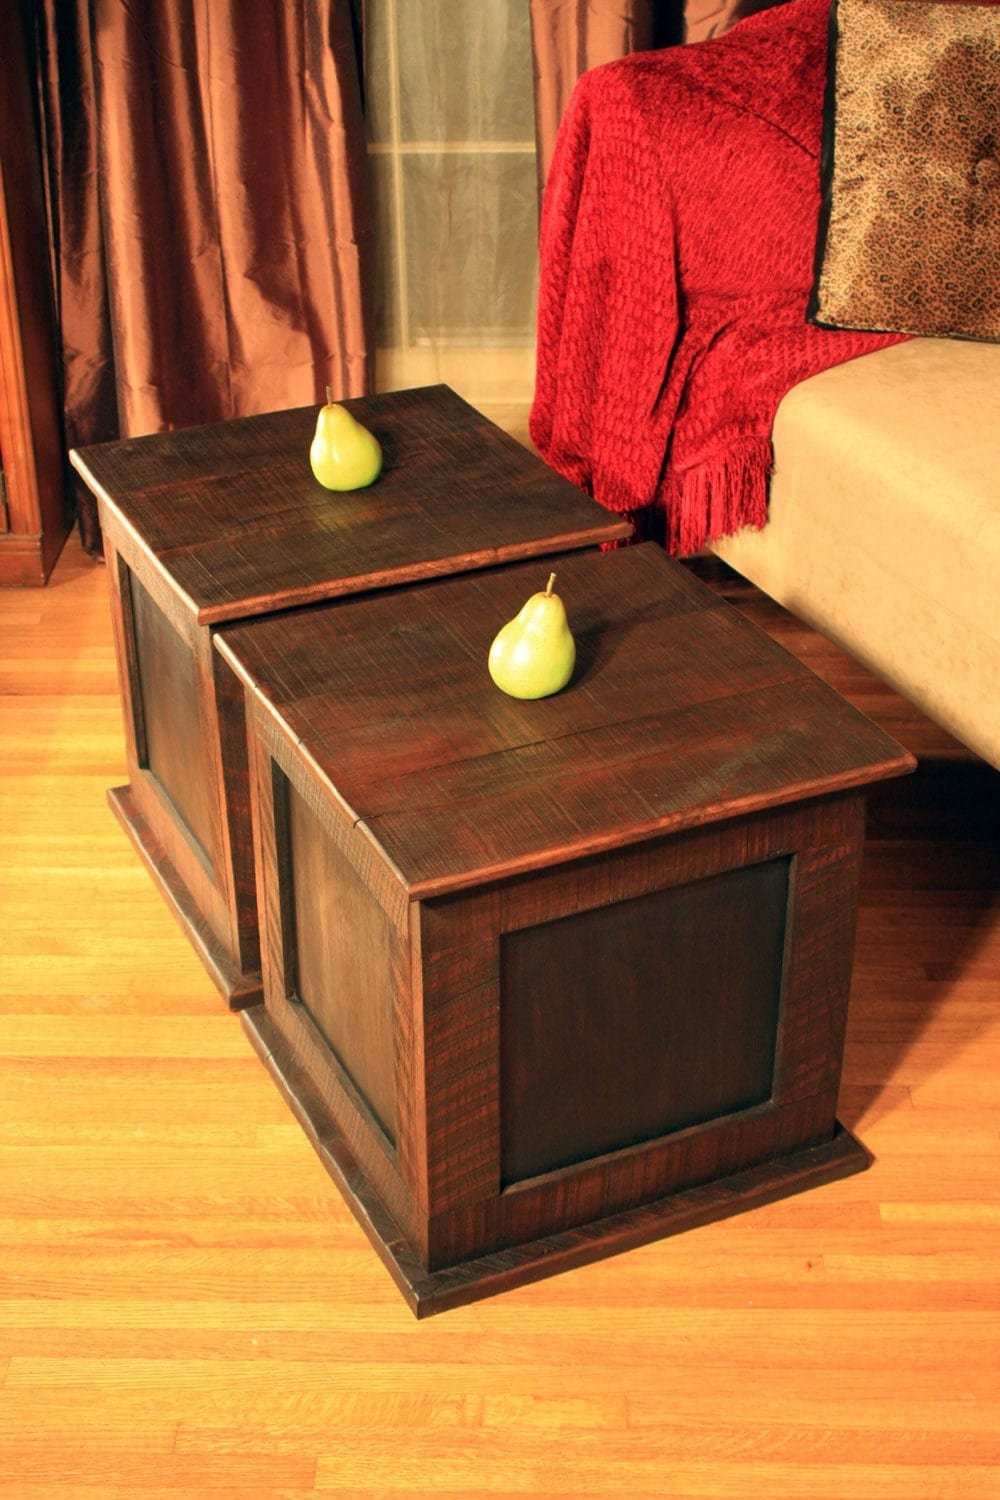 Storage Cube Coffee Table Reclaimed Wood Rustic